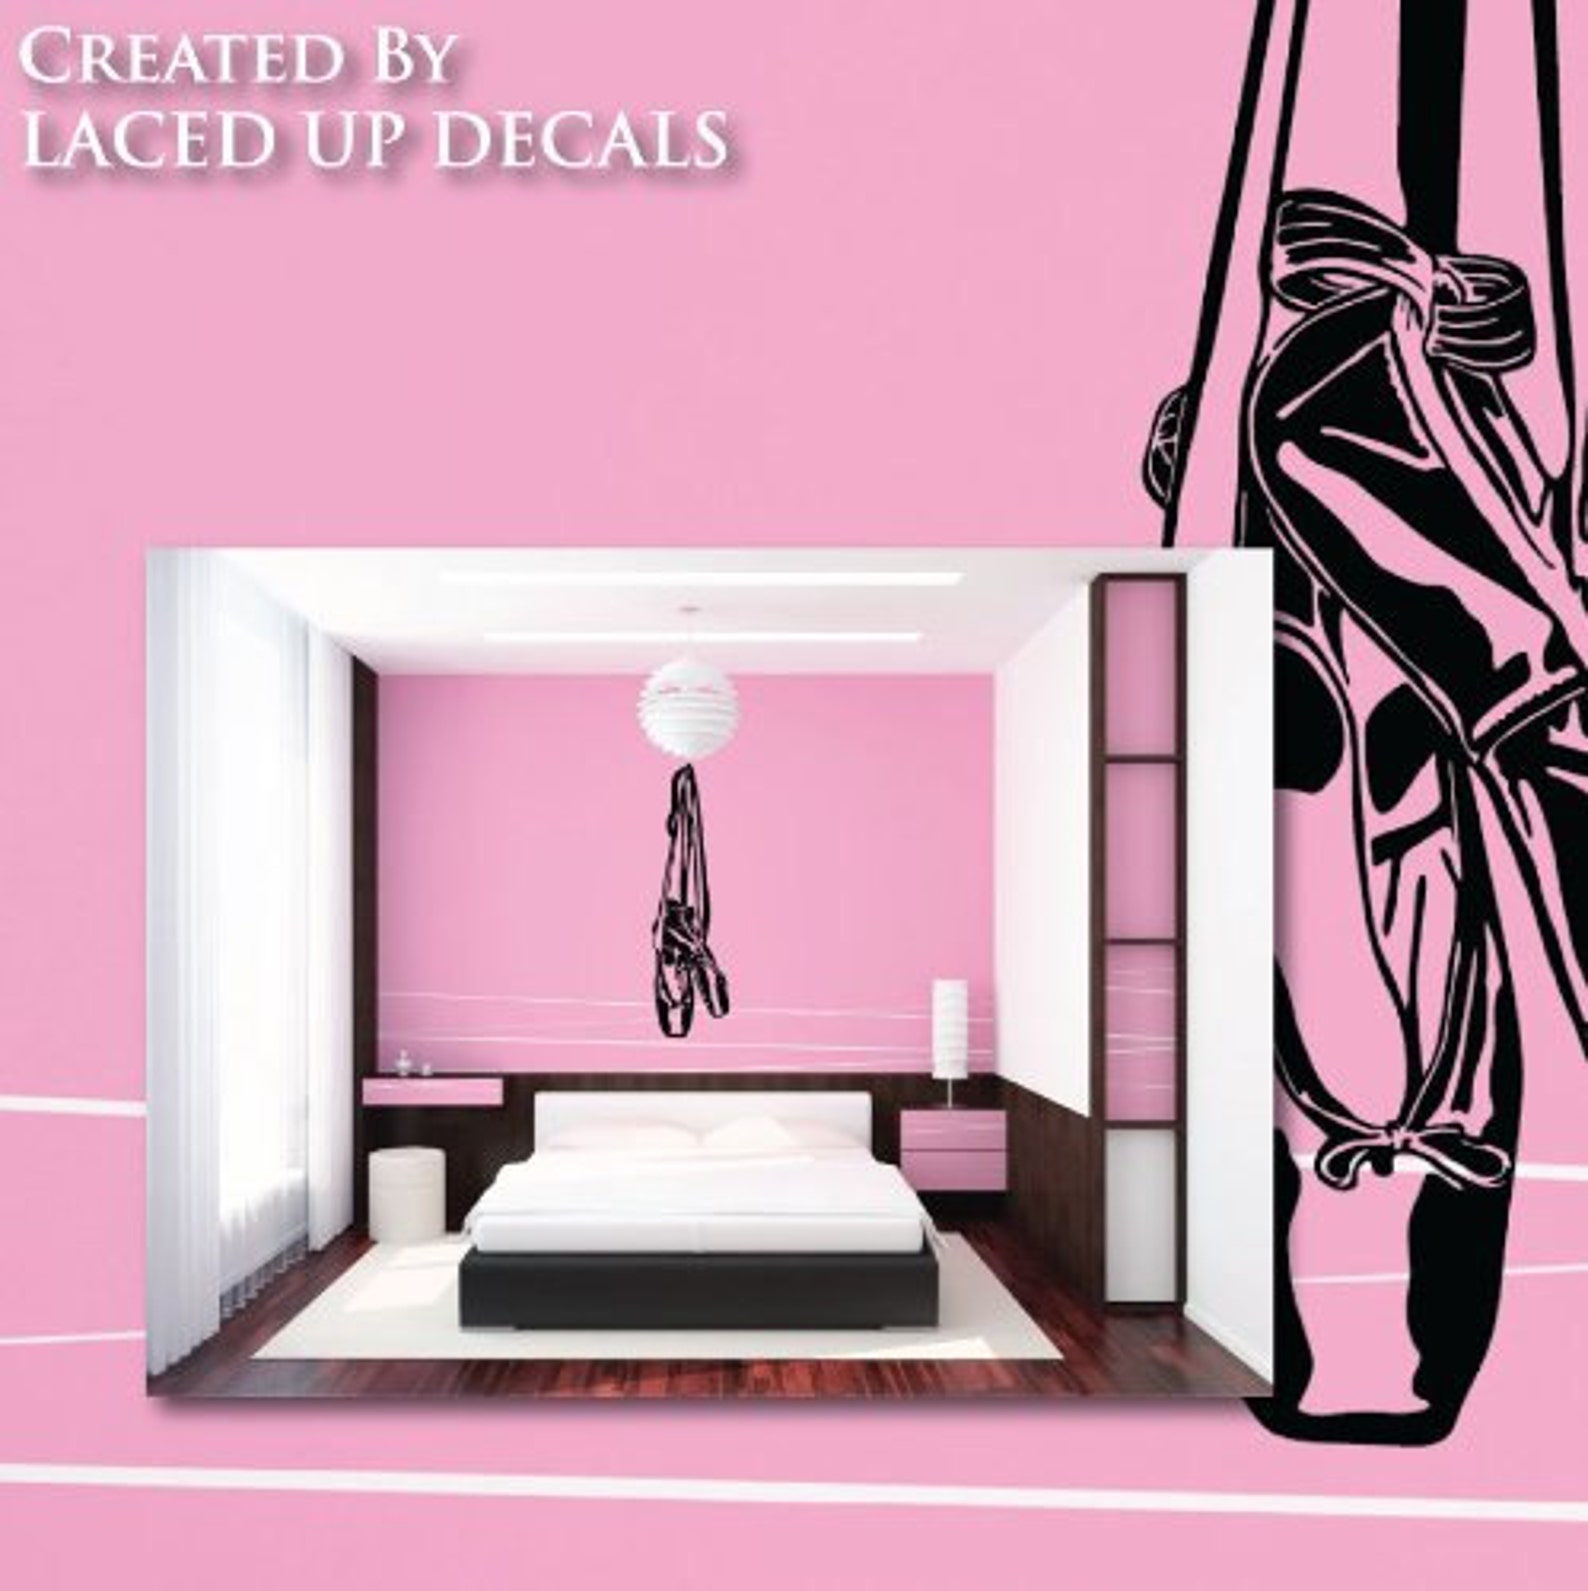 ballet shoes hanging huge wall decal © 2013 laced up decals sku:ballet shoes hanging huge wall decal